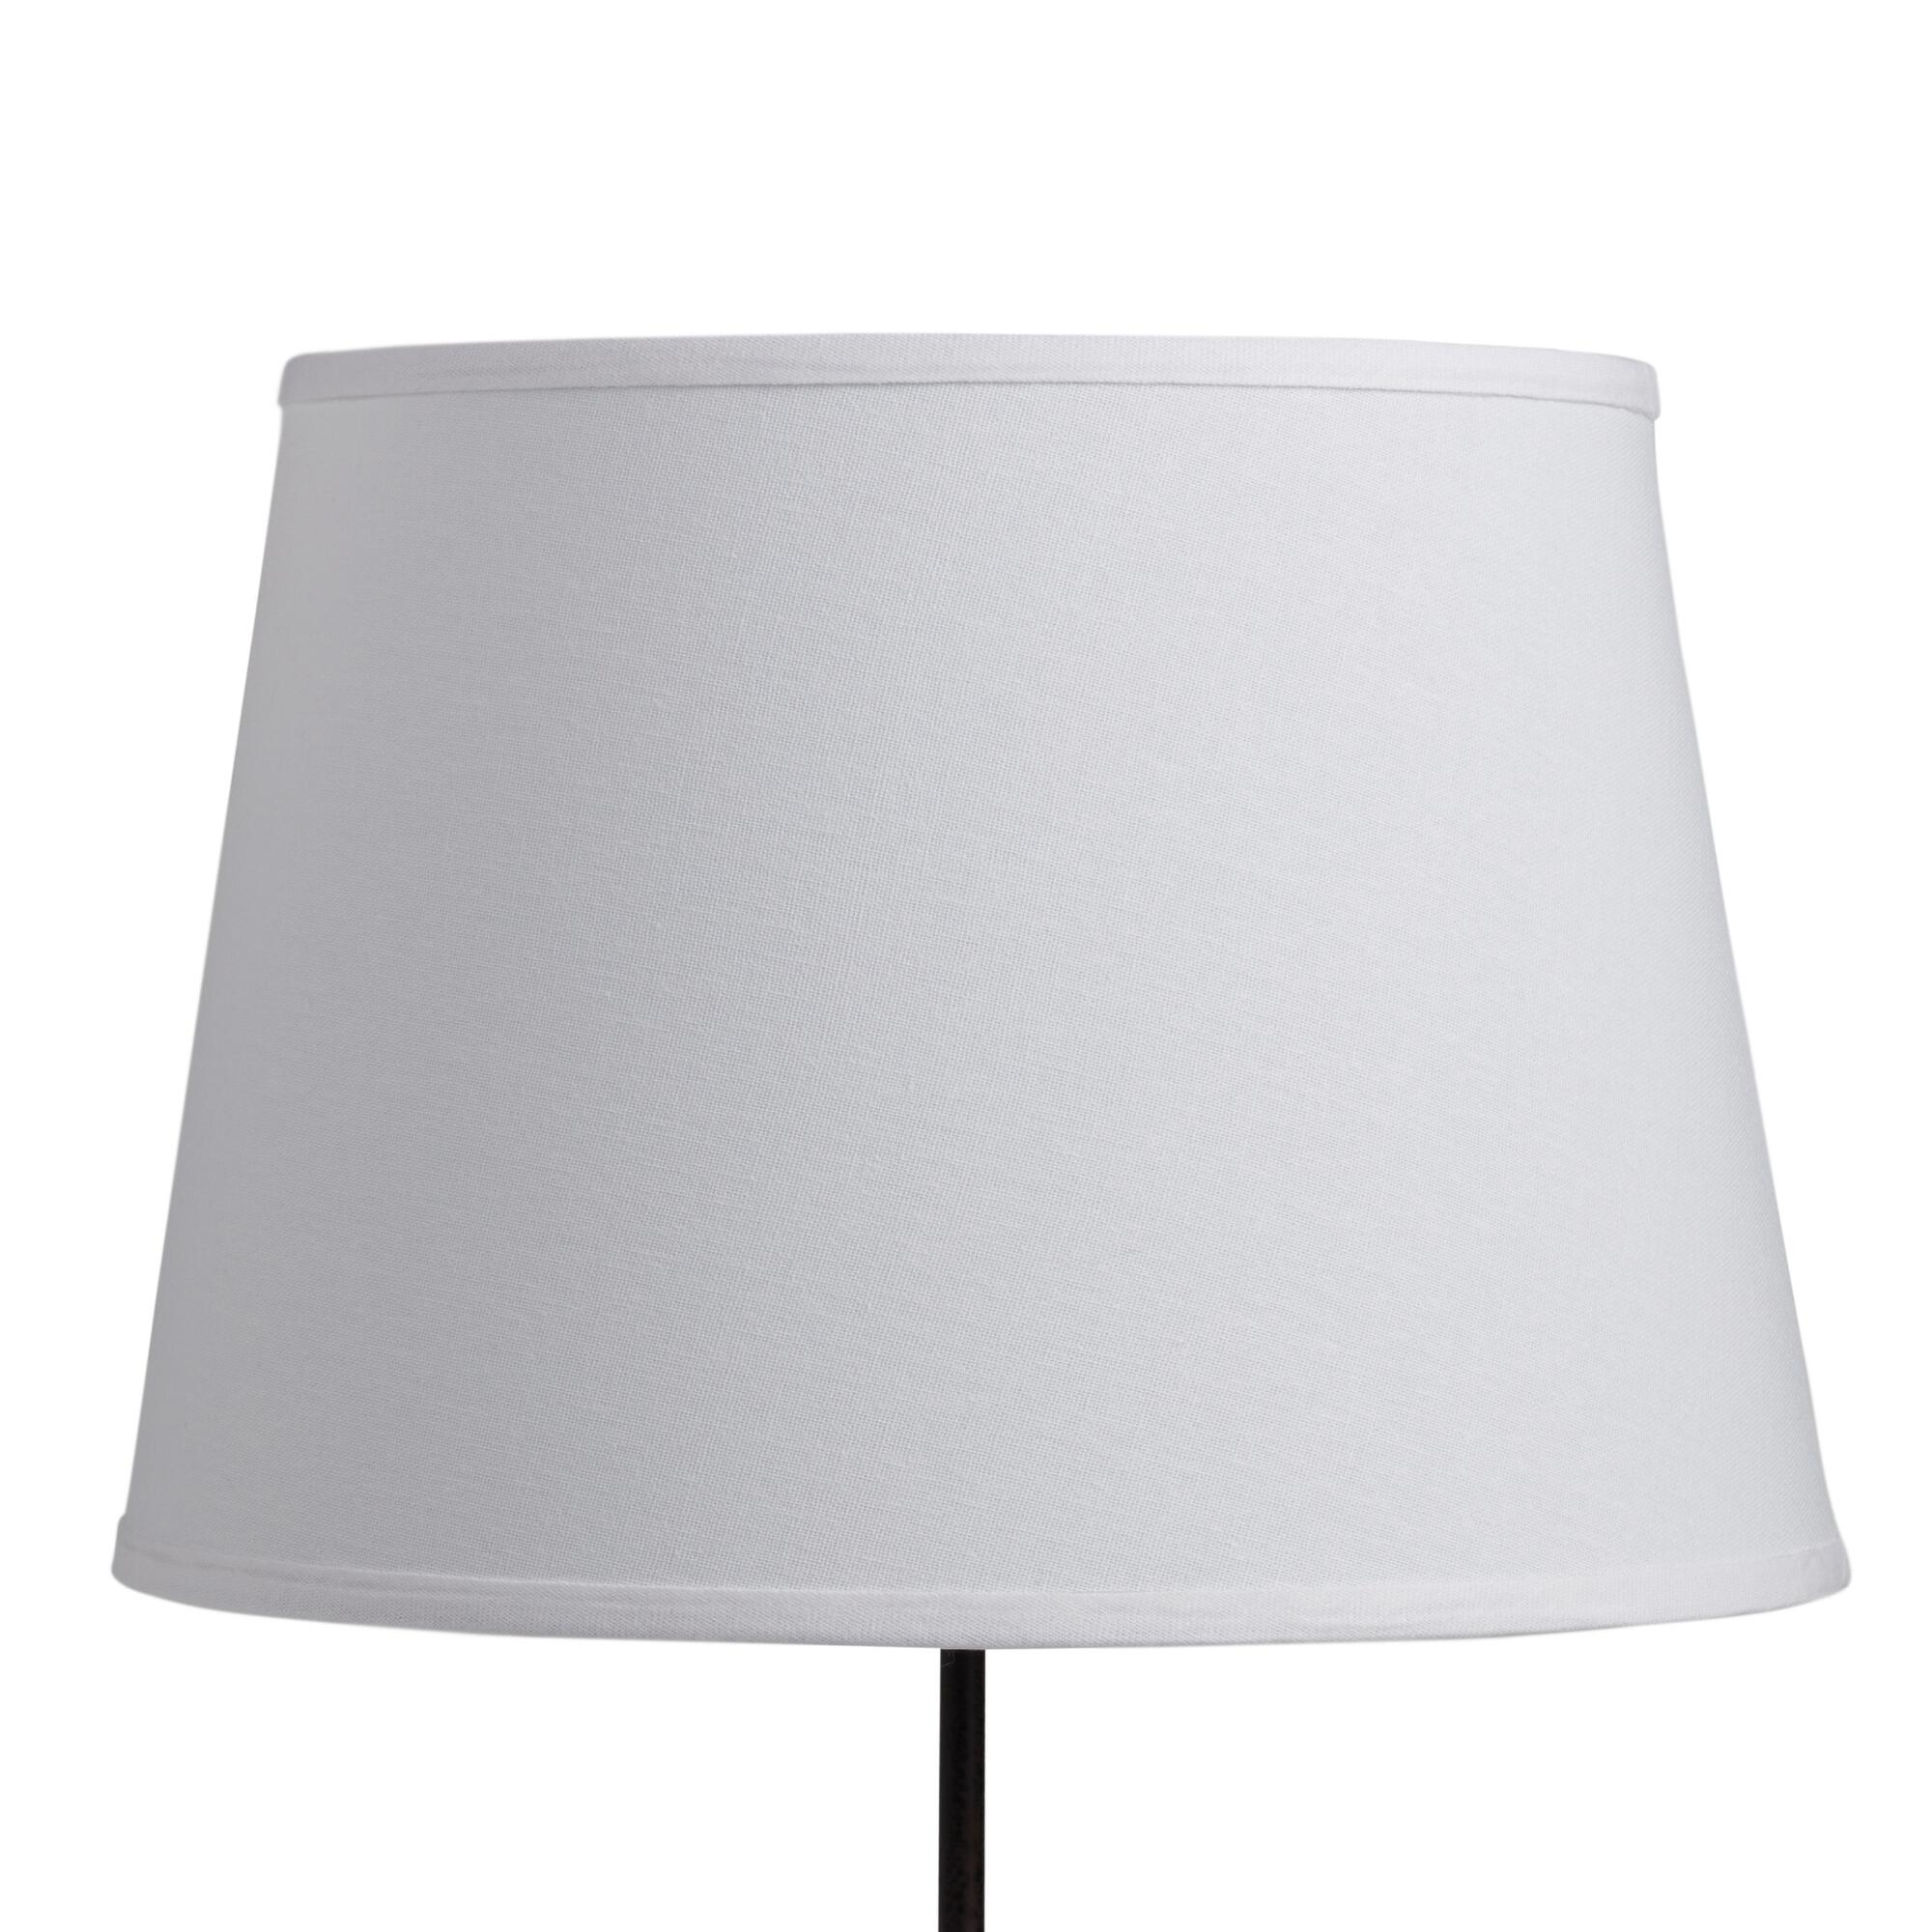 white cotton linen table lamp shade world market. Black Bedroom Furniture Sets. Home Design Ideas